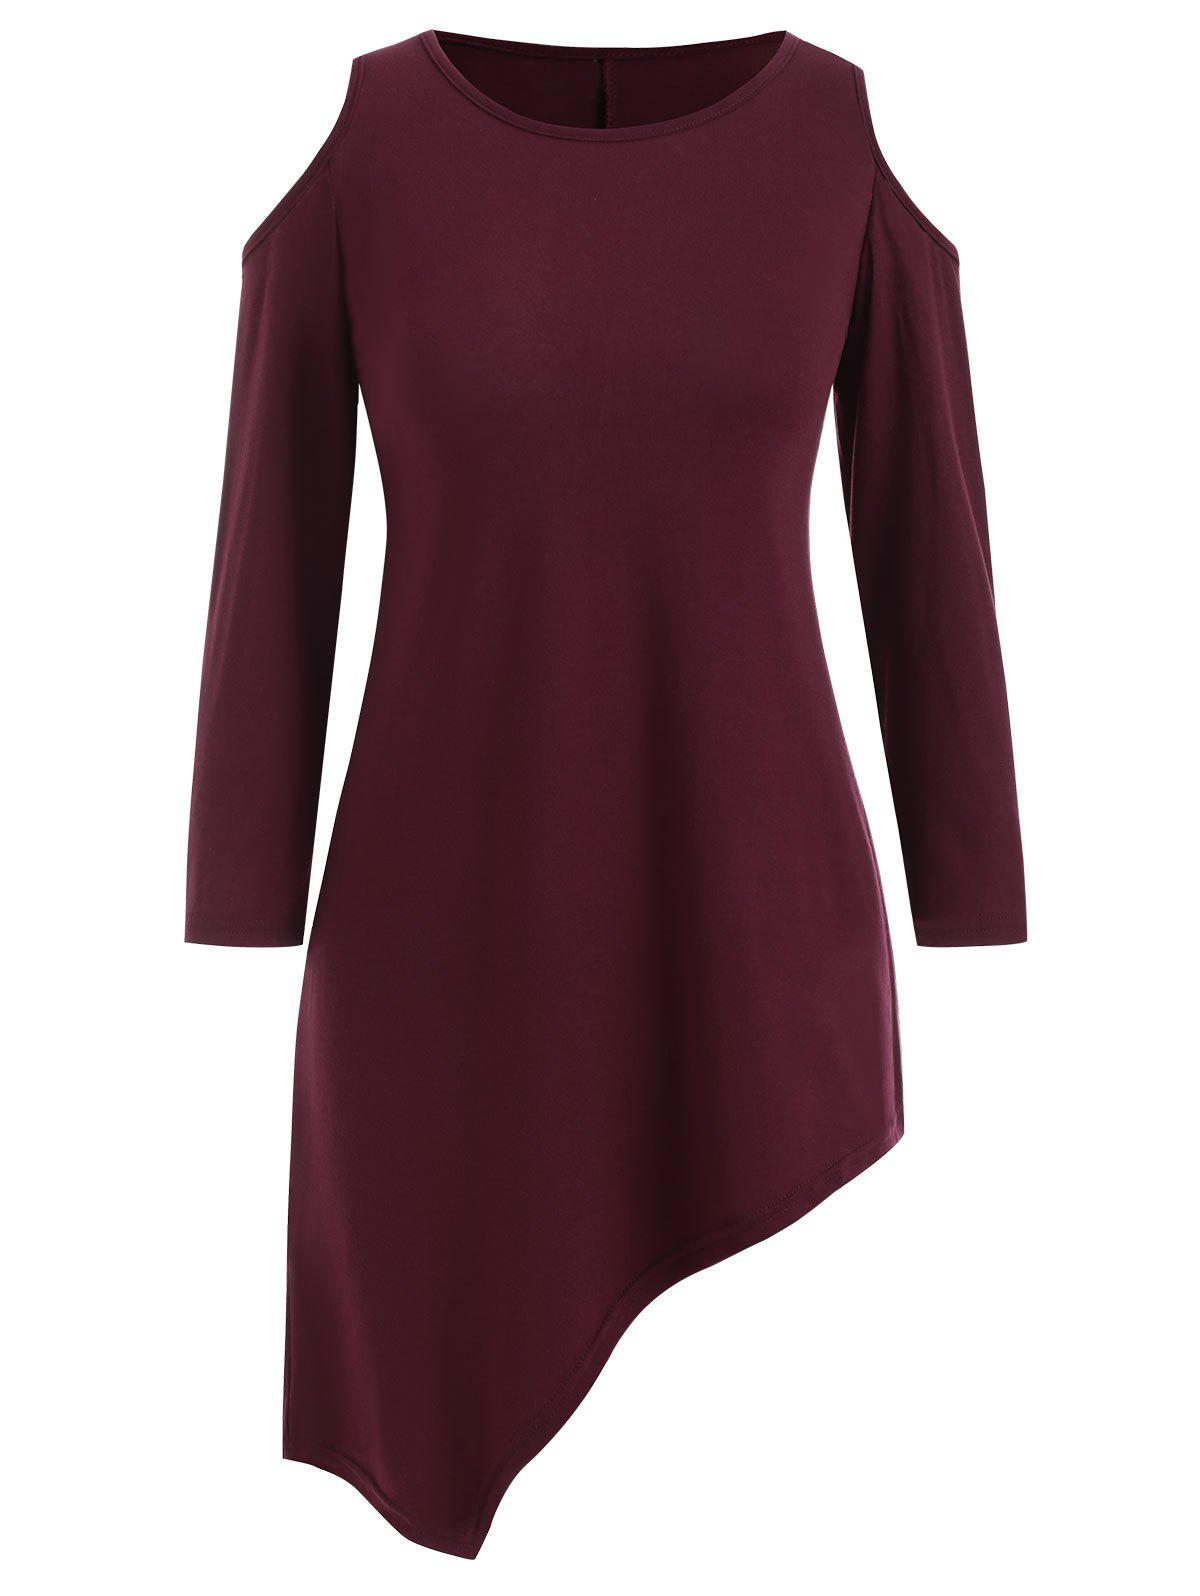 Cold Shoulder Asymmetric Solid Tee - RED WINE L